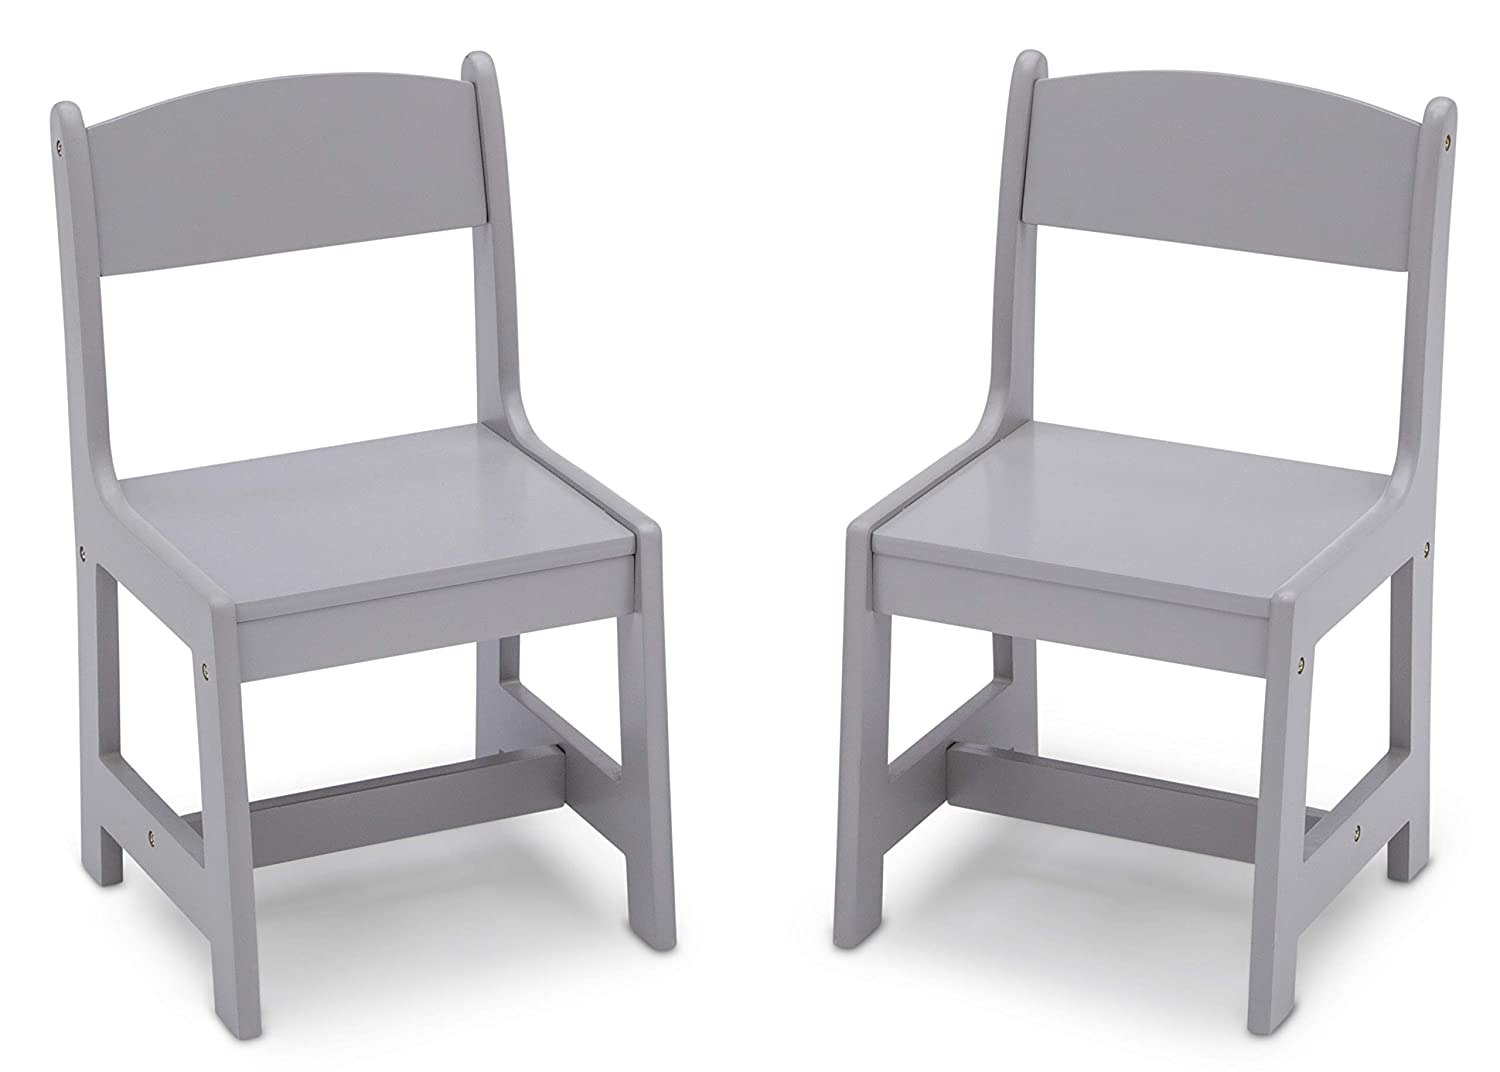 Delta Children MySize Wood Kids Chairs for Playroom [Pack of 2], Grey